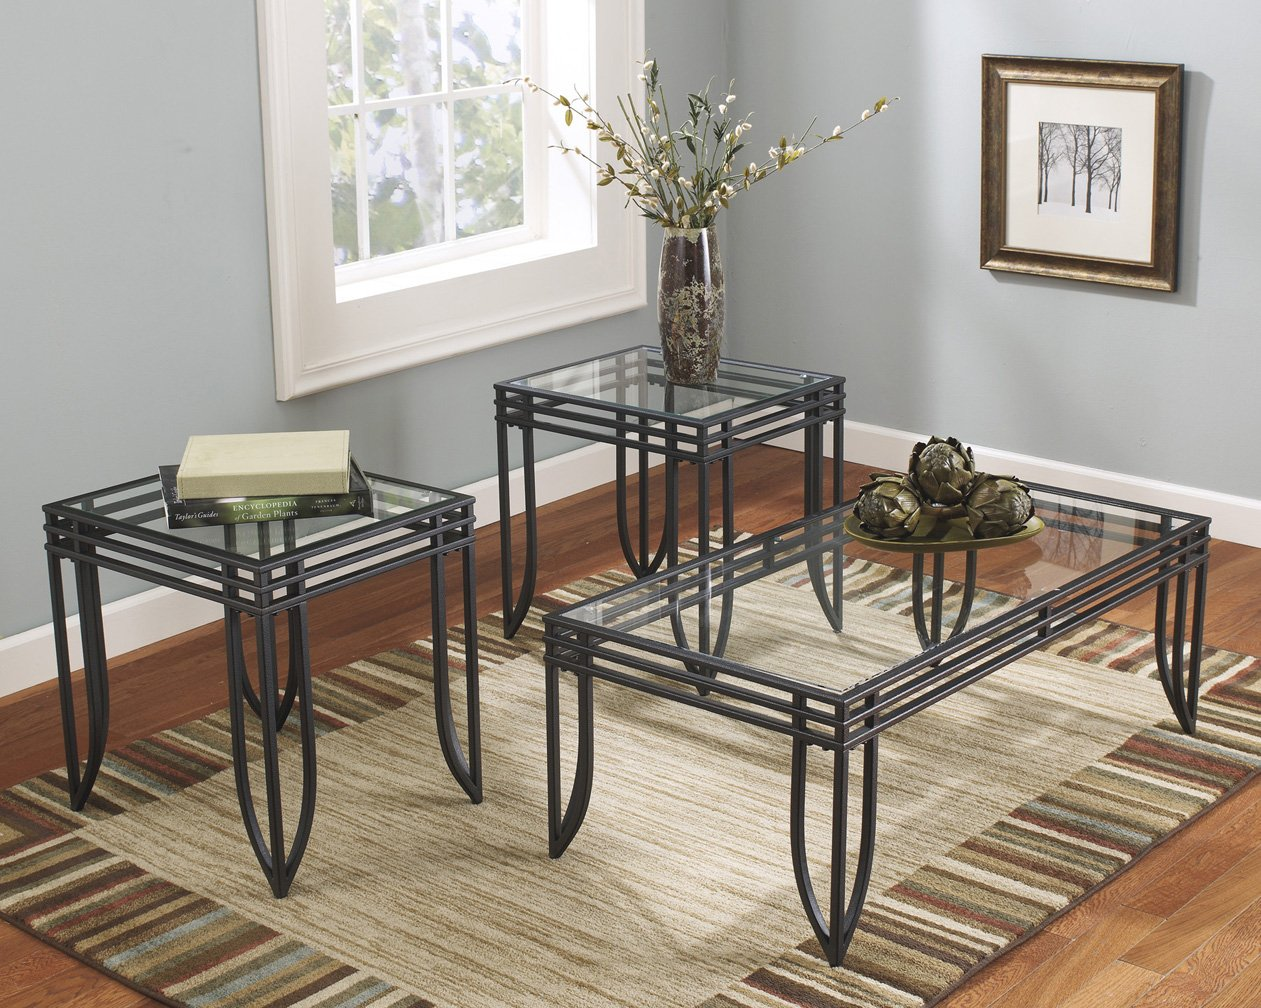 Amazon.com Roundhill Furniture 3307 Matrix 3-in-1 Metal Frame Accent Coffee and 2 End Table Set Kitchen u0026 Dining & Amazon.com: Roundhill Furniture 3307 Matrix 3-in-1 Metal Frame ...